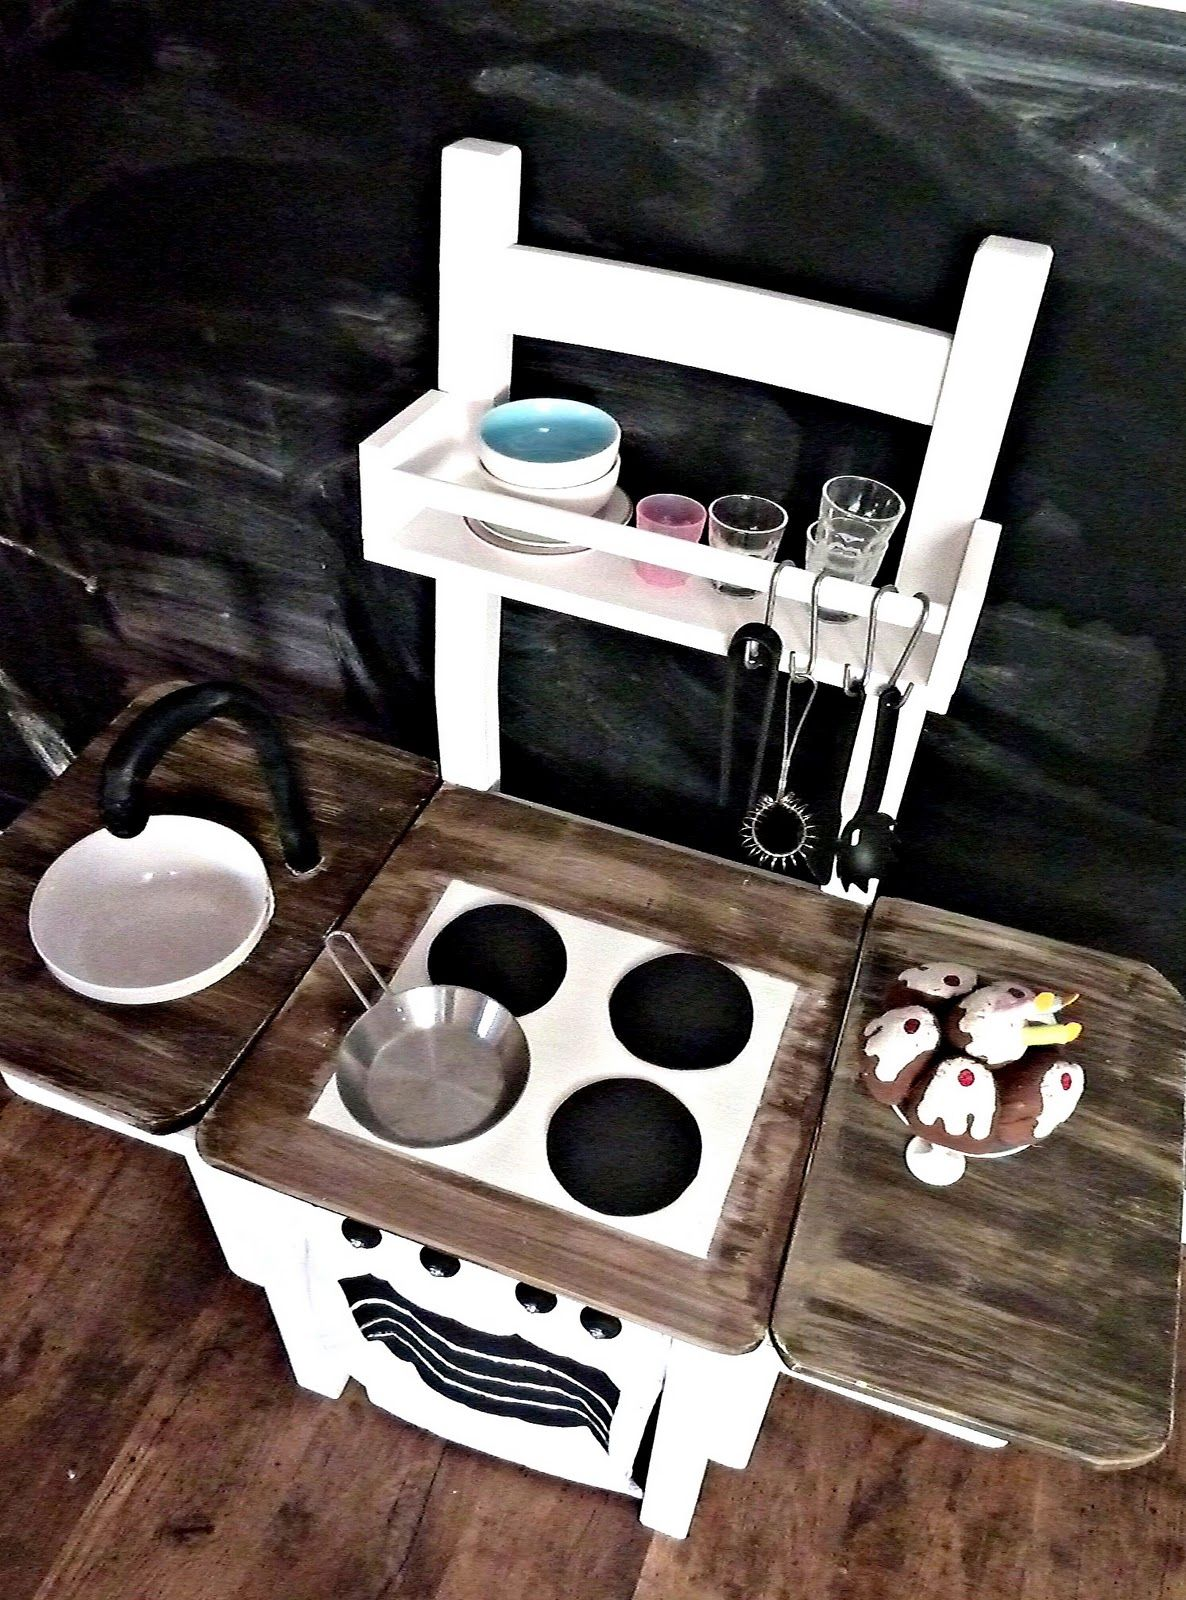 Small house kitchen toys ugirl poweru mode kitchen made from chair